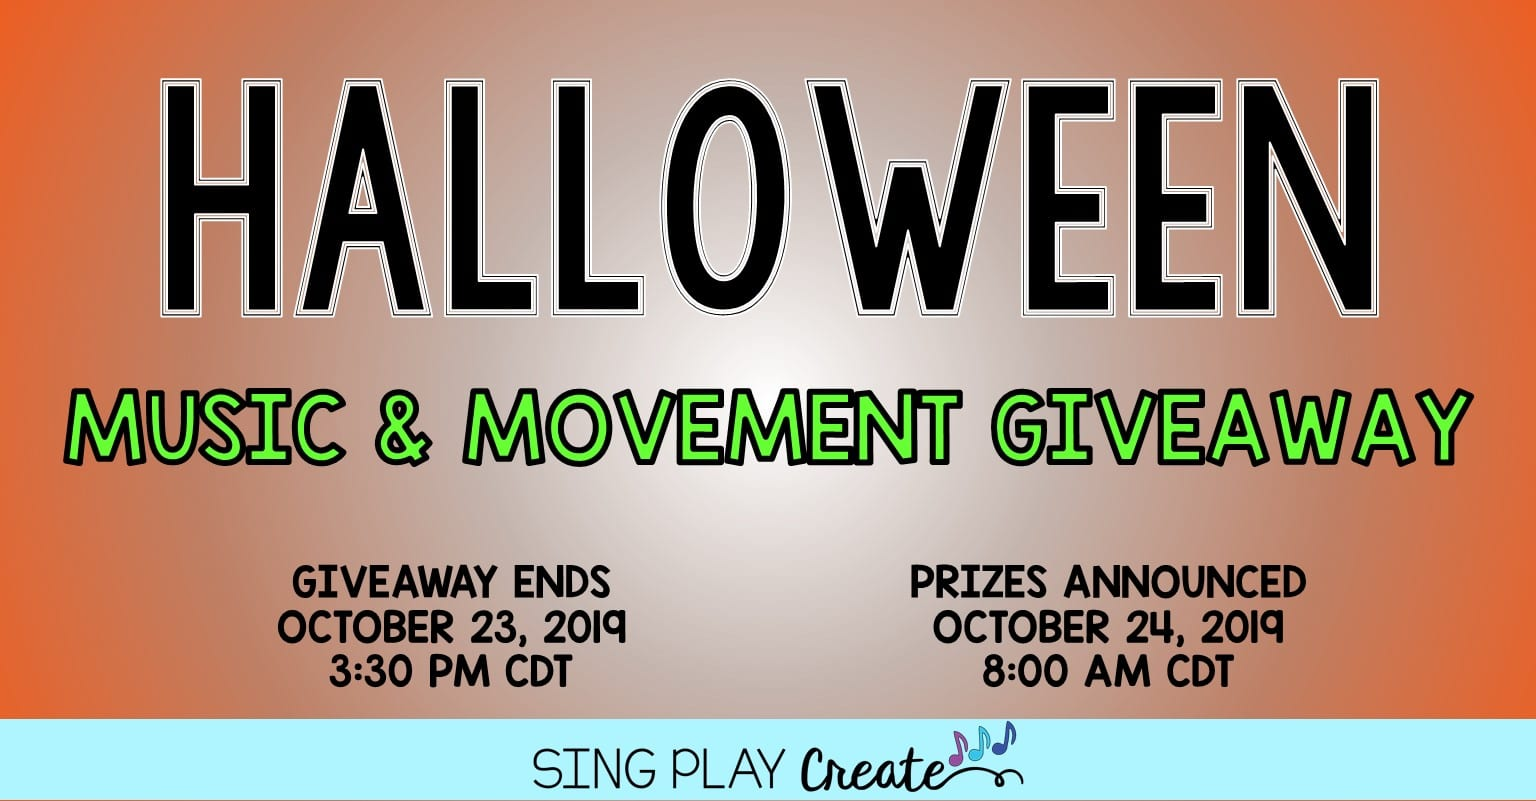 Halloween Music And Movement Giveaway